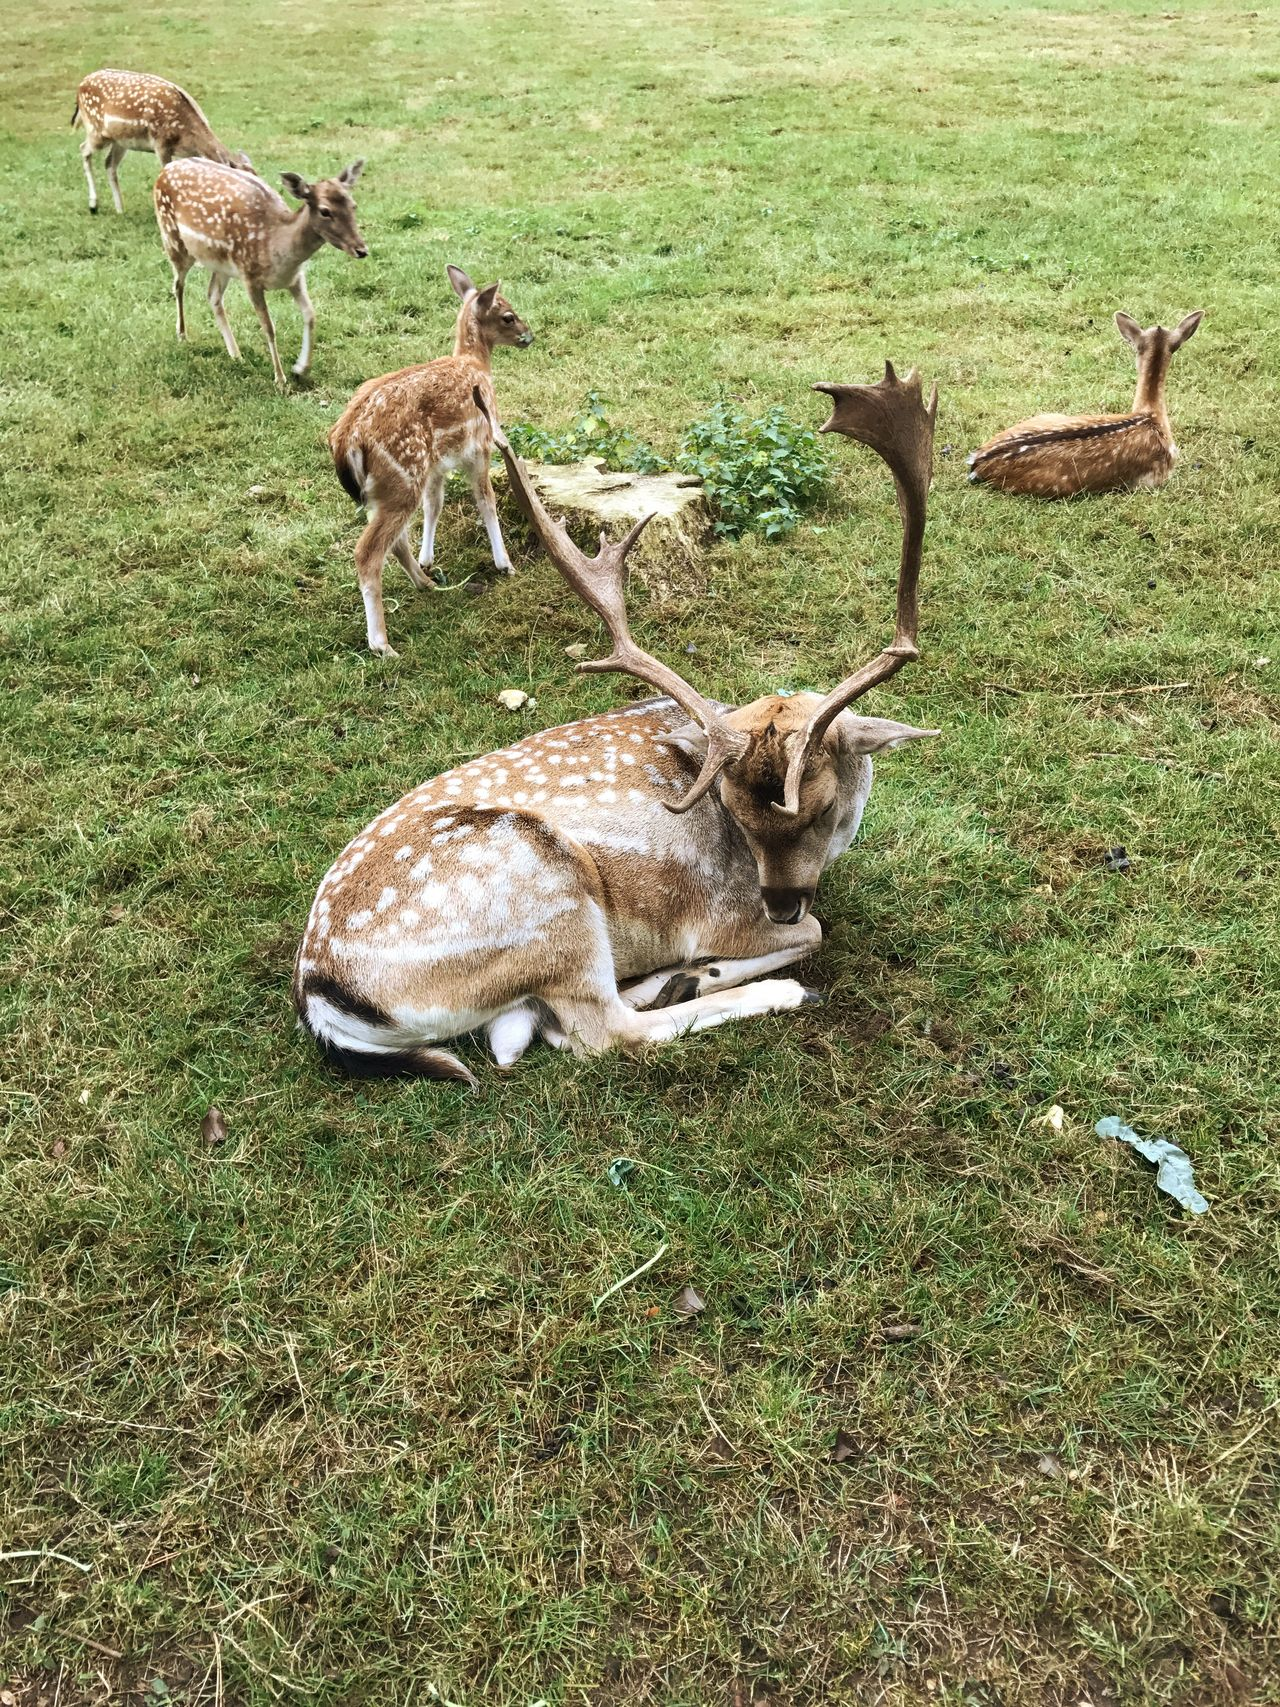 Deer Roe Deer Animals Field Animal Themes Grass Mammal Livestock Domestic Animals Grassy Herd Herbivorous Green Color Outdoors Zoology Domestic Cattle Day Animal No People